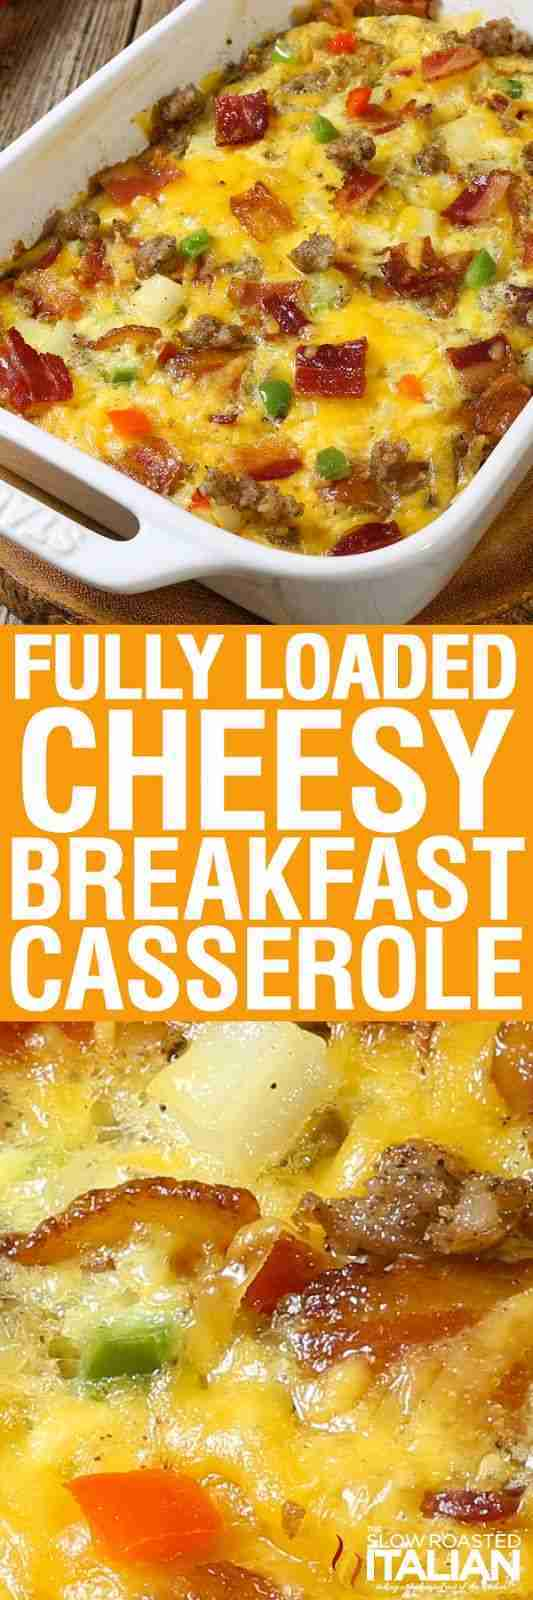 Fully Loaded Cheesy Breakfast Casserole